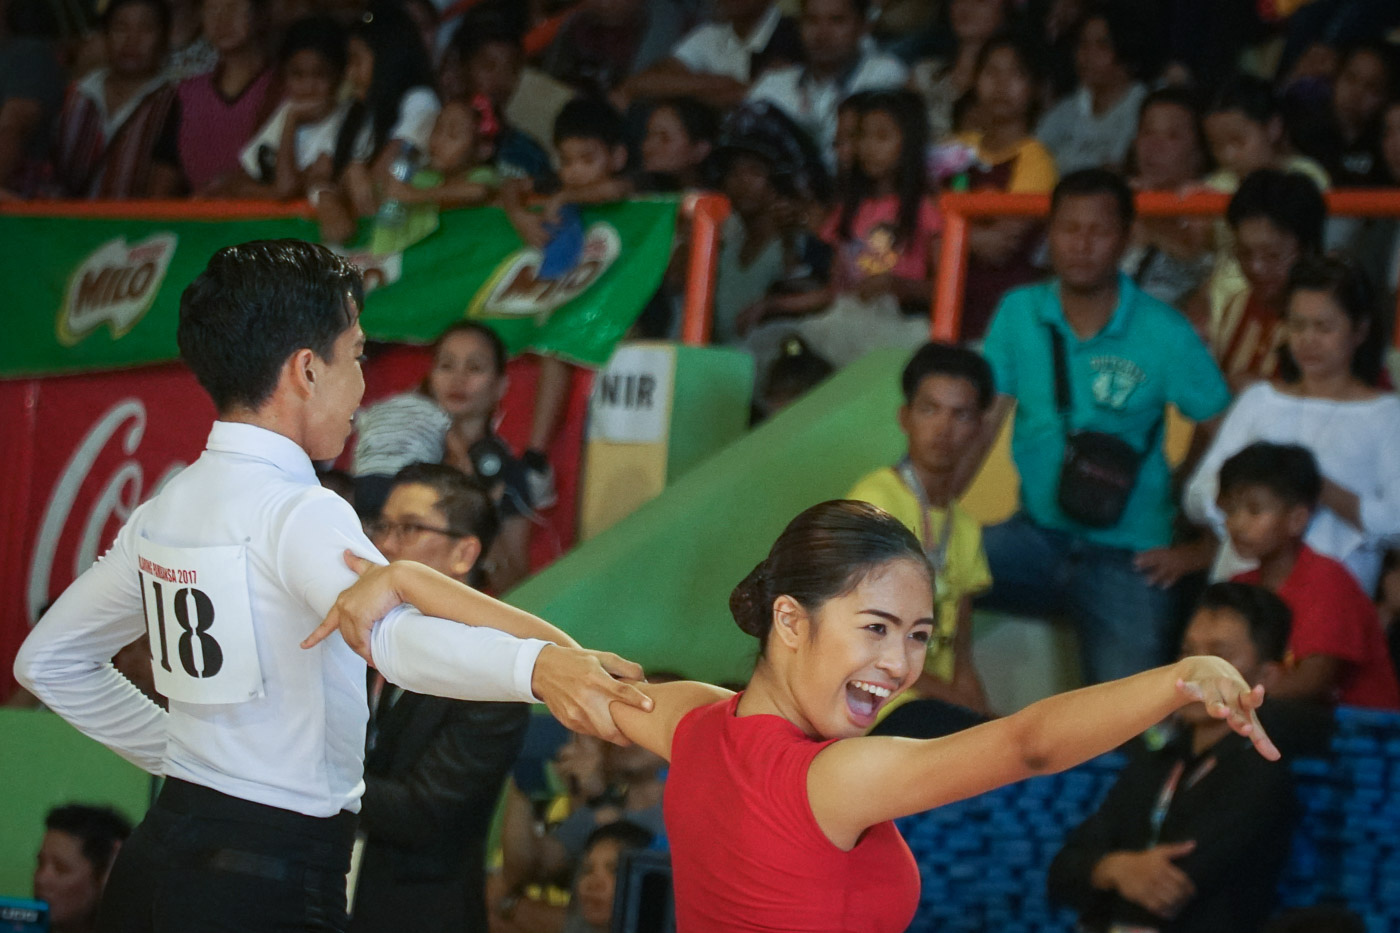 CONFIDENT. Representatives from Region VI, Heather Angelique Parangan and Mark Leo Layson, compete in the Junior Latin American Category. Photo by Andrea Pefianco/Rappler